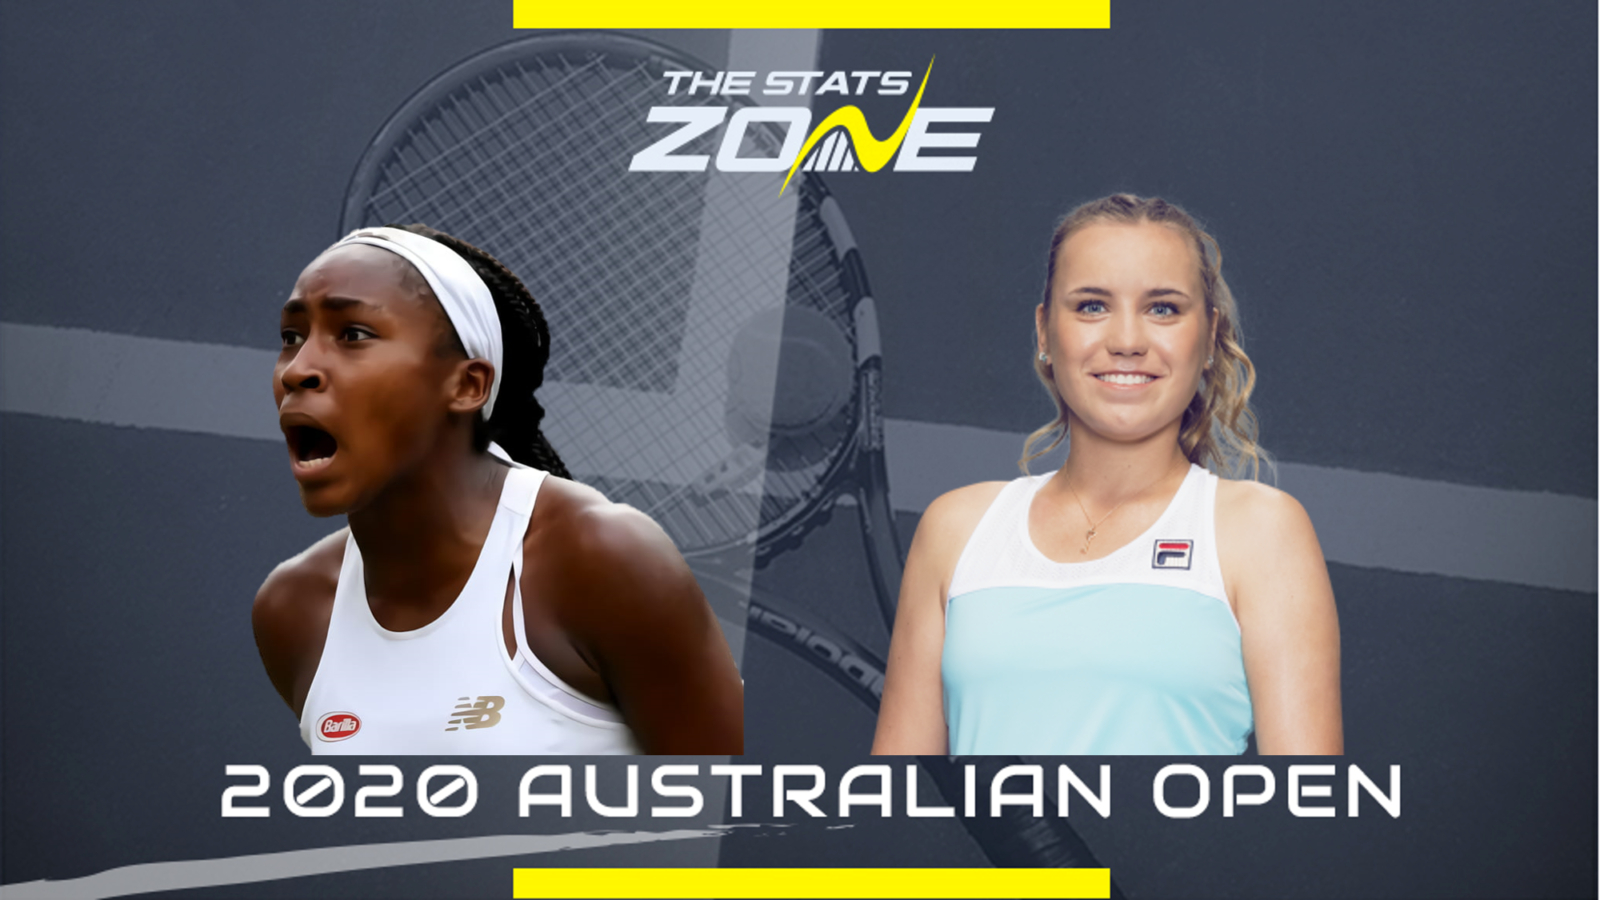 2020 Australian Open Coco Gauff vs Sofia Kenin Preview 1600x900